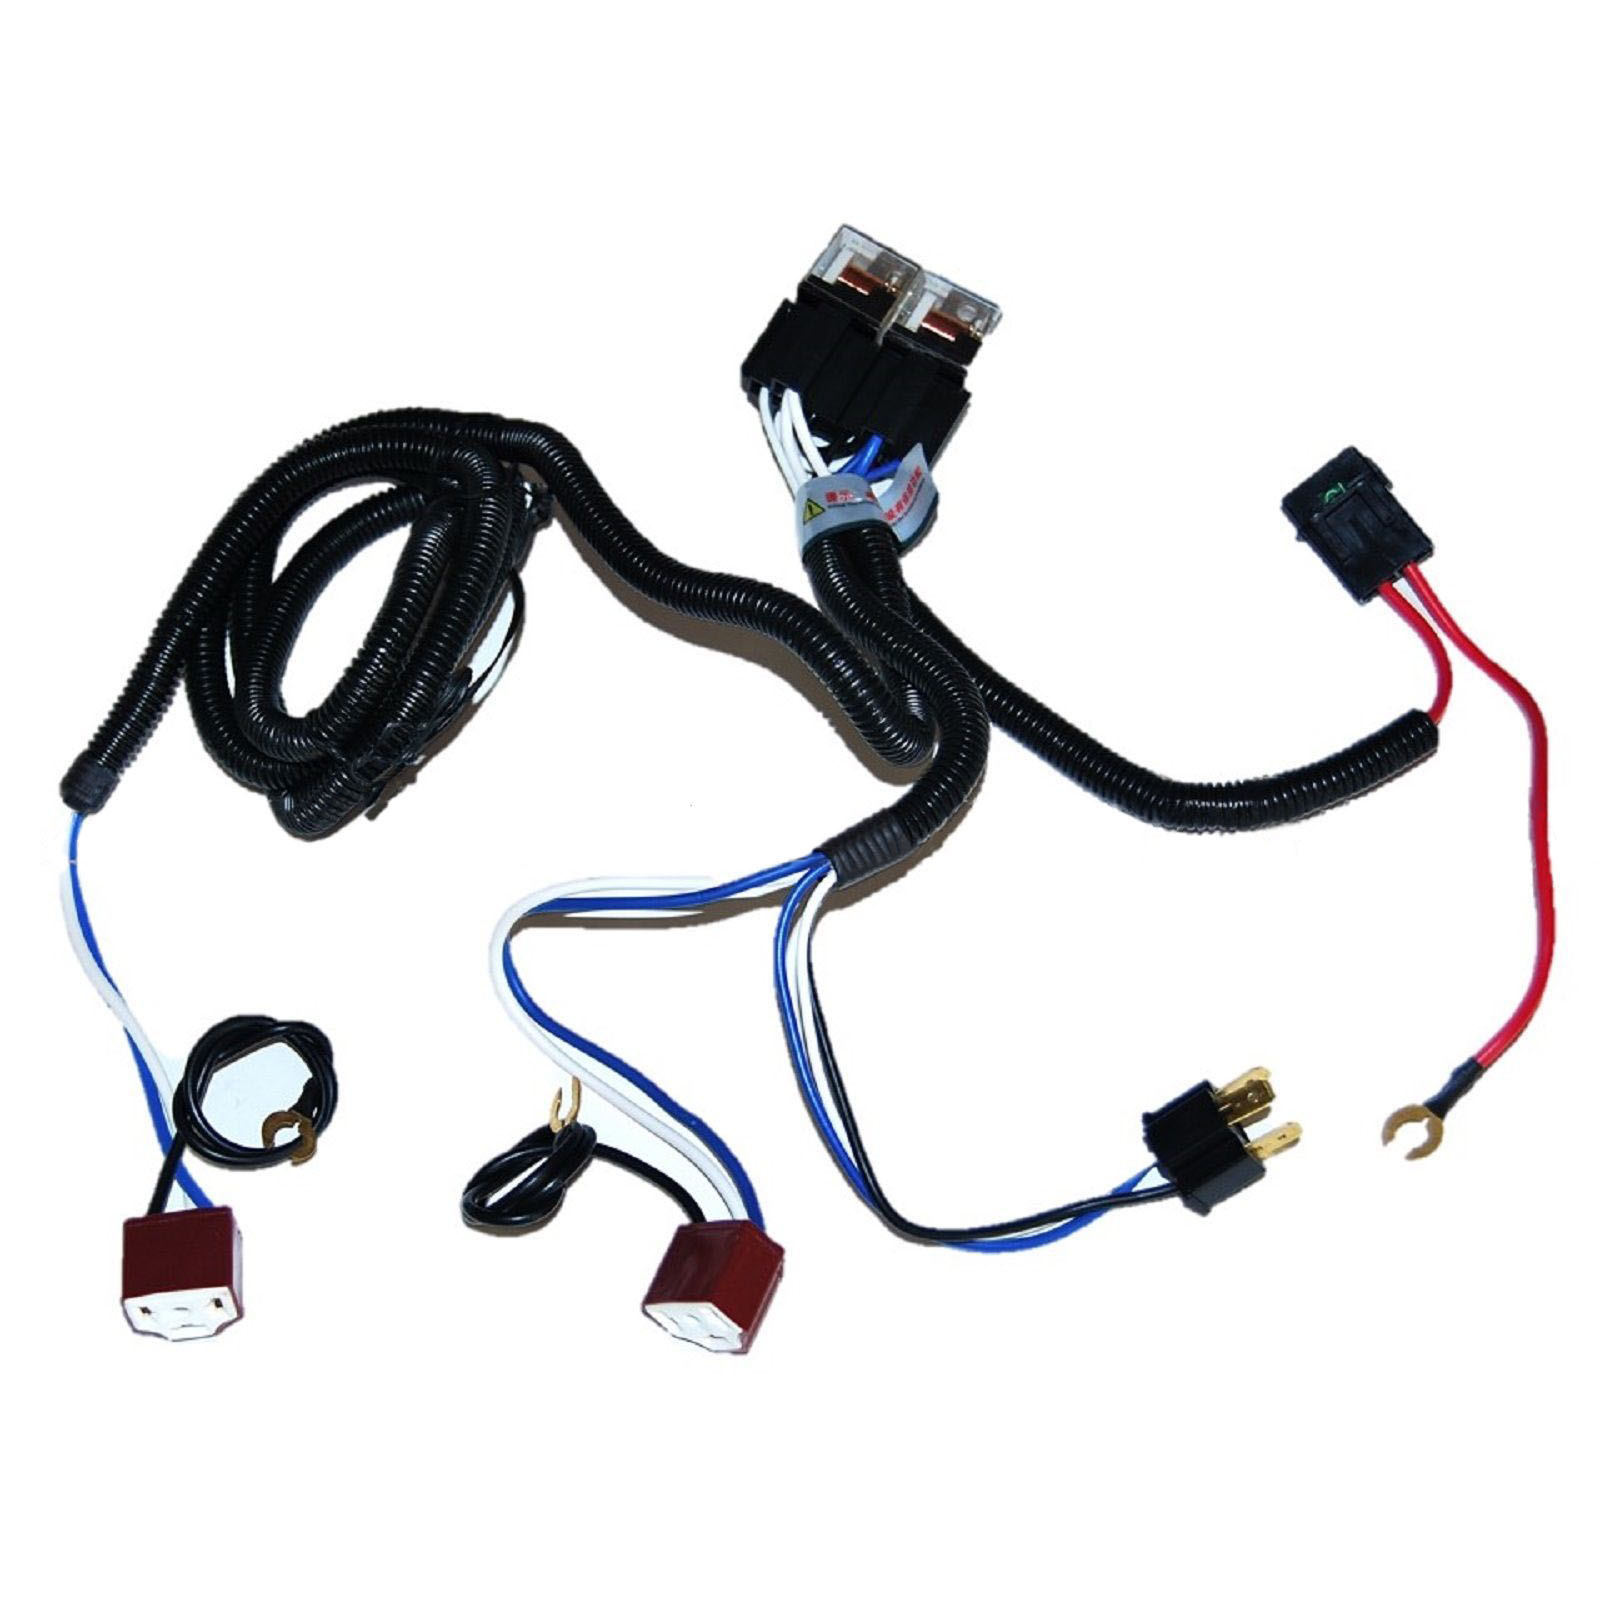 ceramic h4 headlight relay wiring harness 2 headlamp light bulb rh ebay com 1954 Ferrari 1953 Ferrari